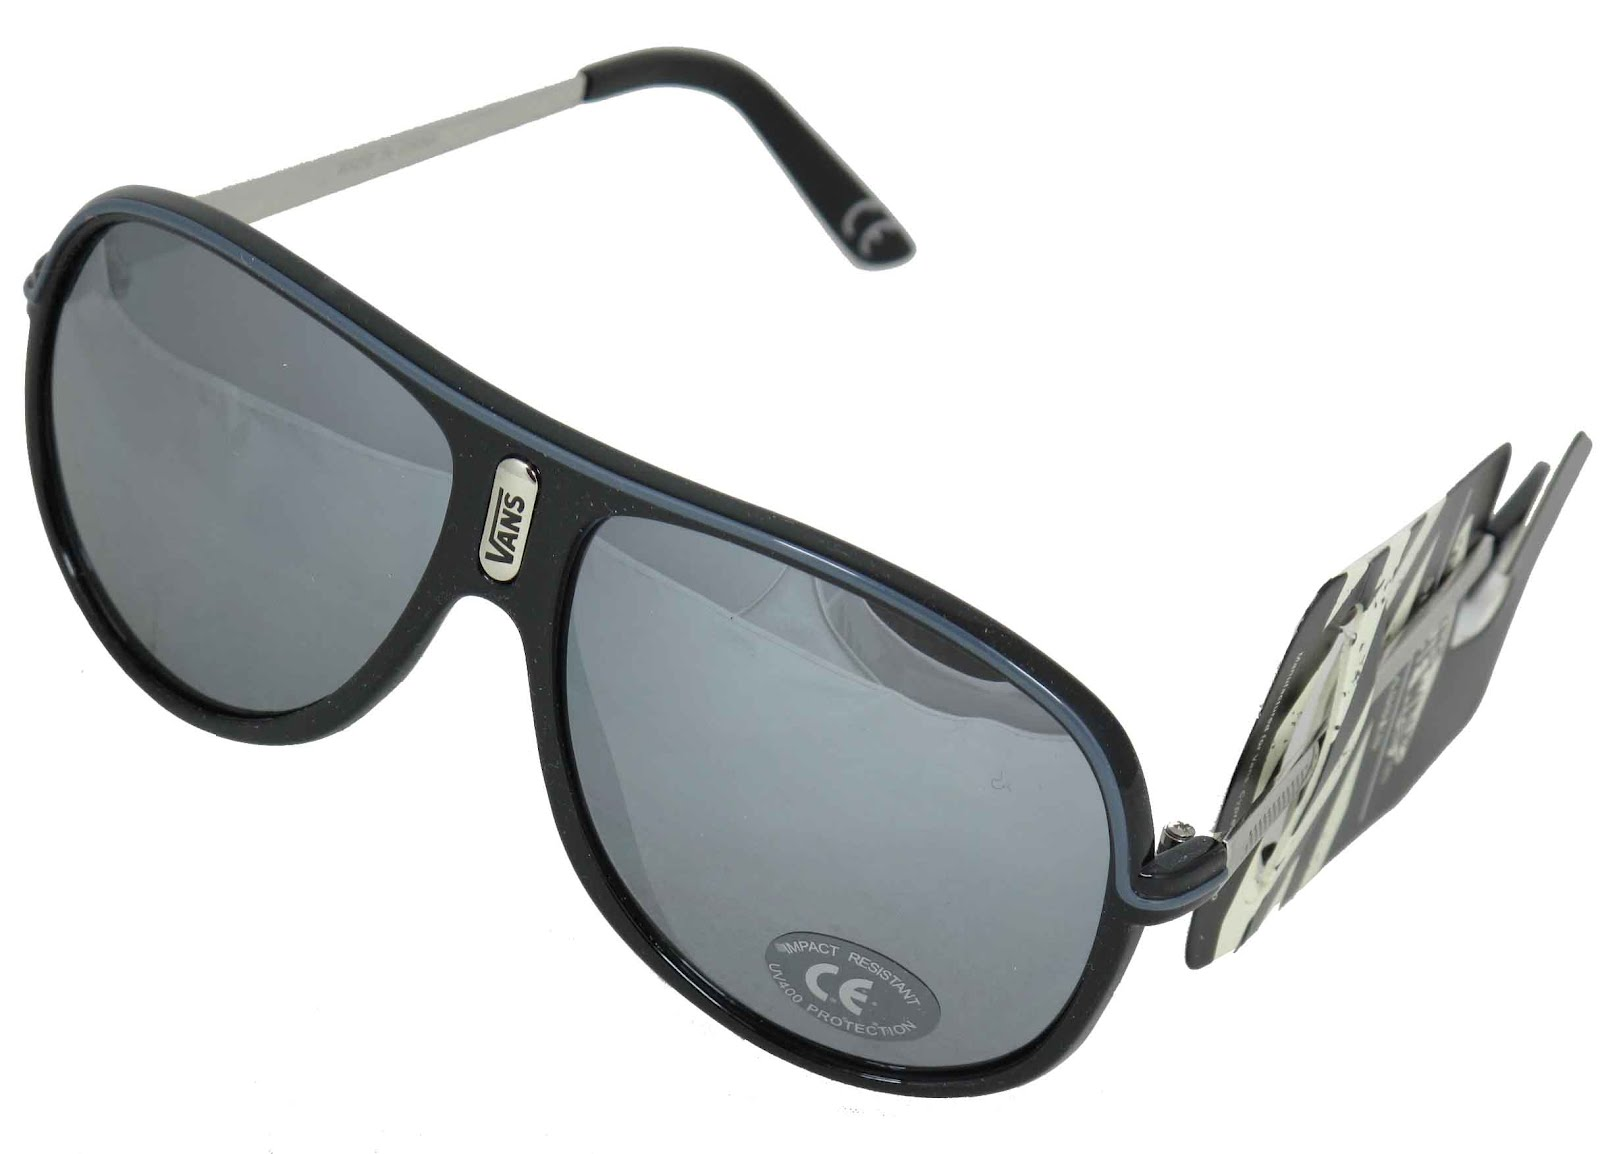 8576b9de26c9 Vans Sunglasses. Bring on the sunshine with these awesome new oversized and classic  aviator styles at just £18 !!